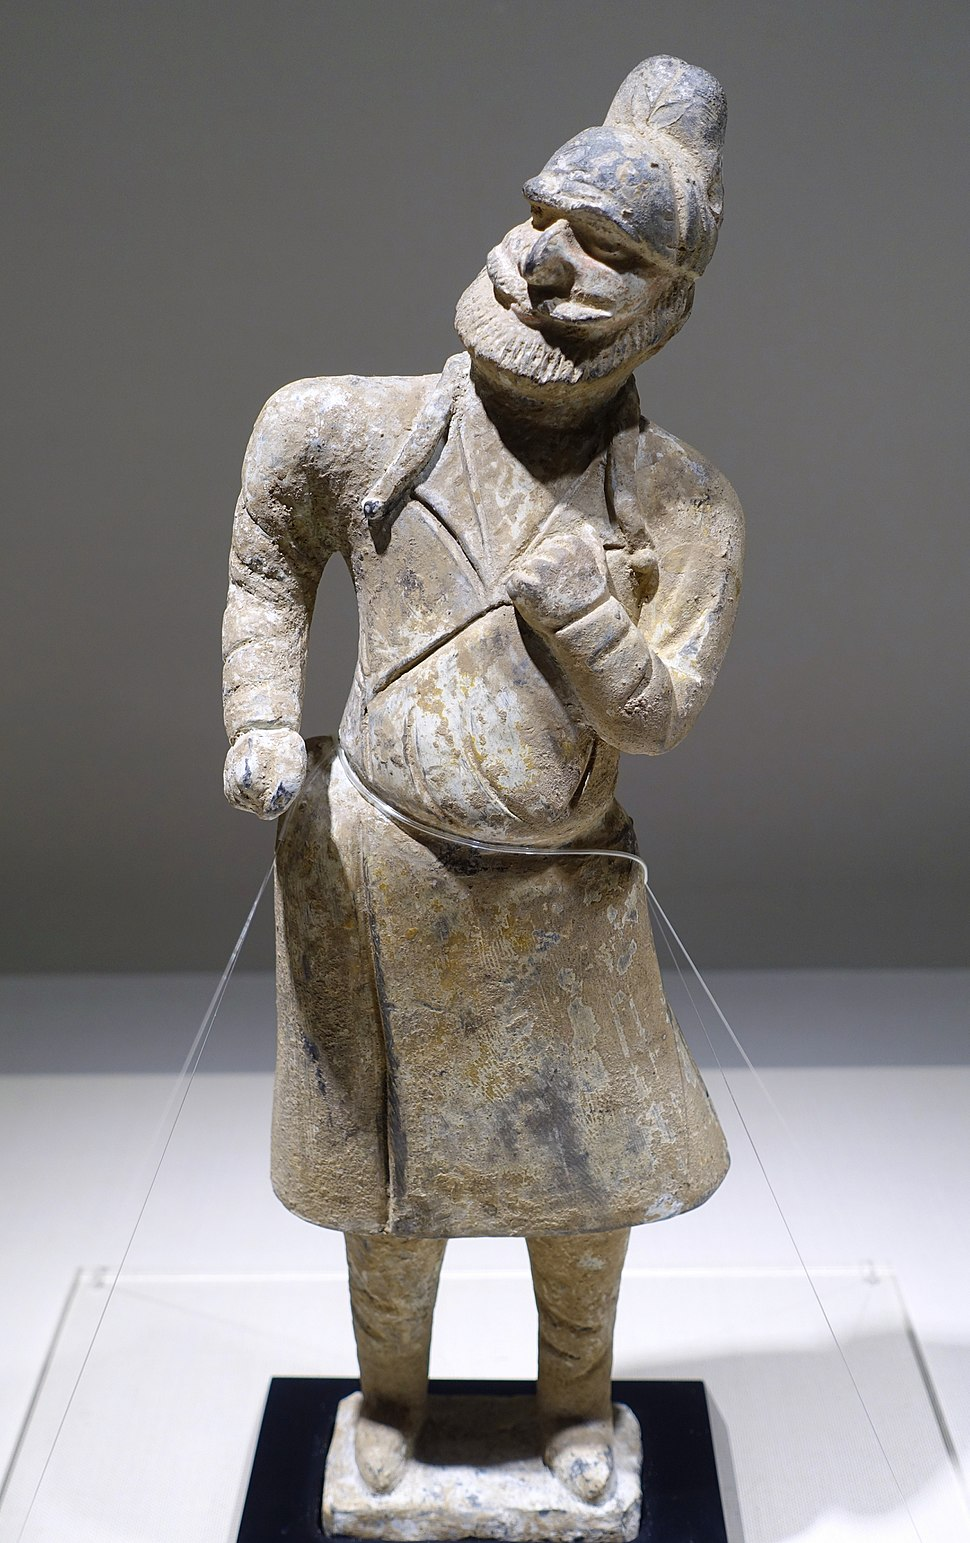 Western groom figure, China, Tang dynasty, 7th century AD, gray pottery with painted ornament - Matsuoka Museum of Art - Tokyo, Japan - DSC07248